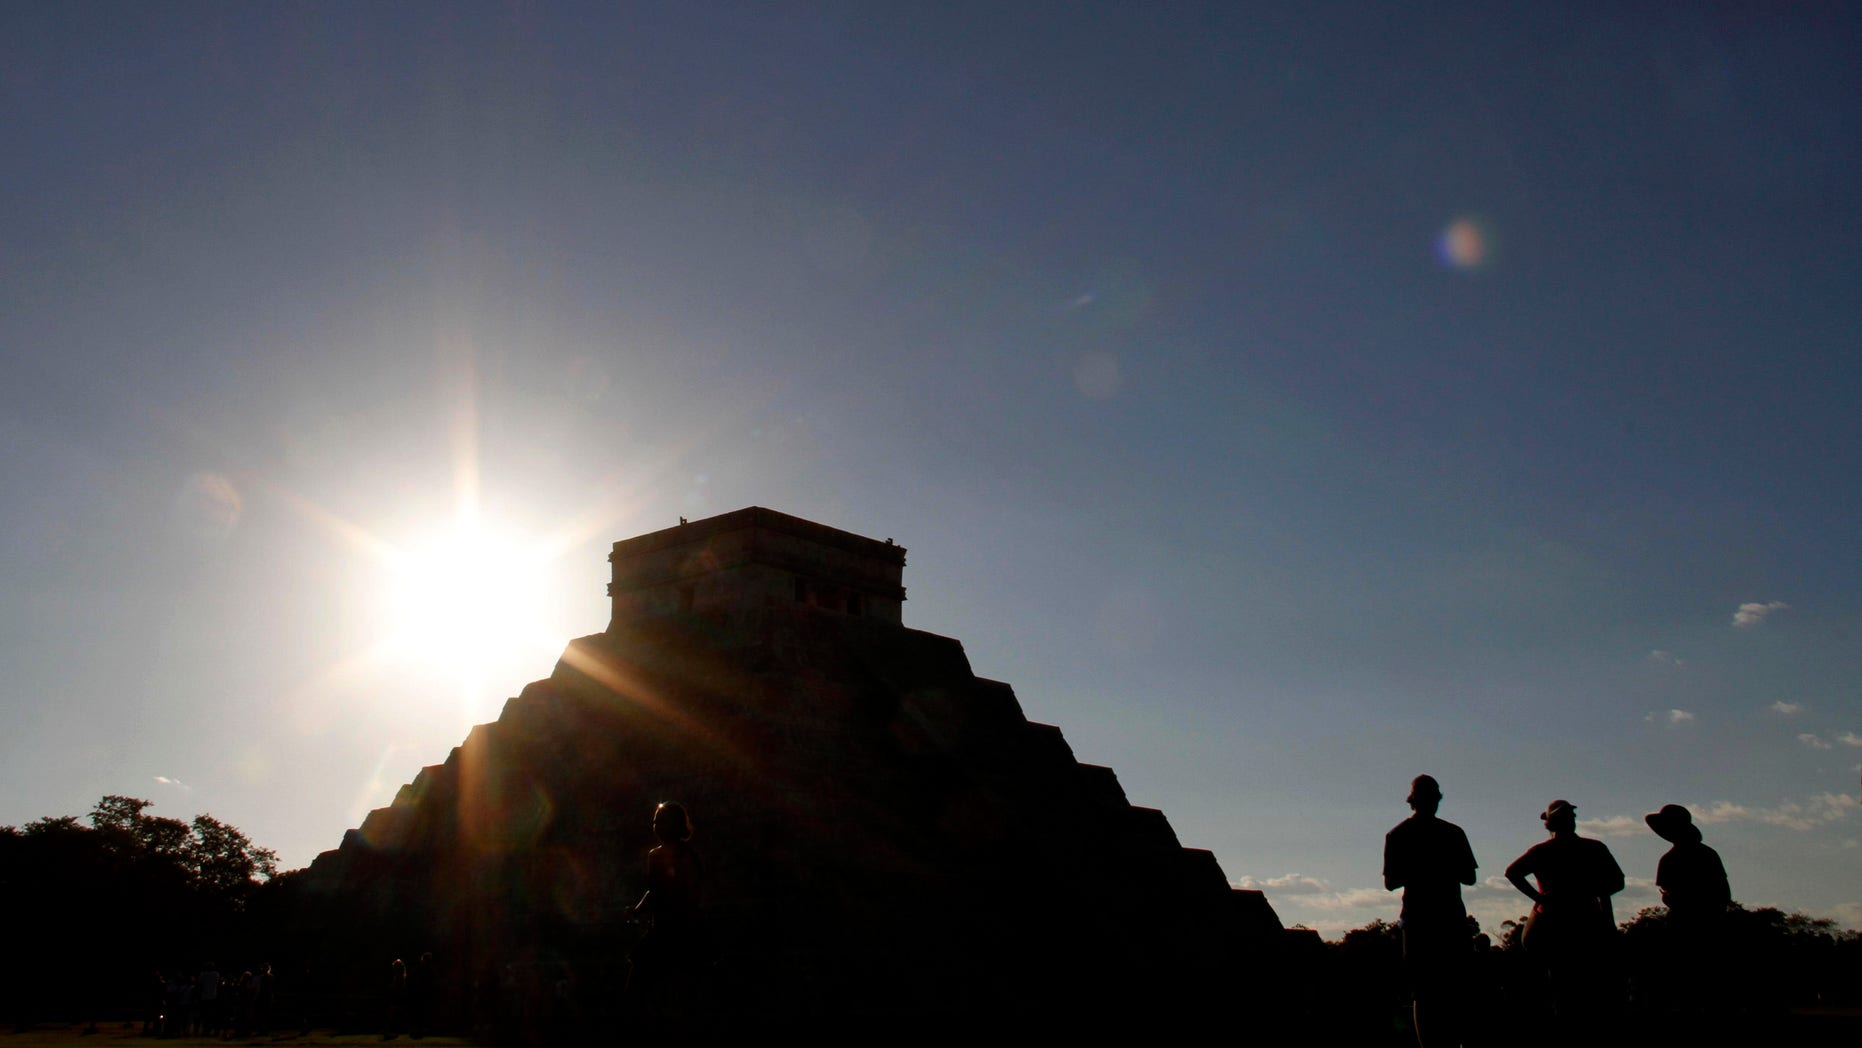 Dec. 20, 2012 - People gather in front of the Kukulkan Pyramid in Chichen Itza, Mexico.